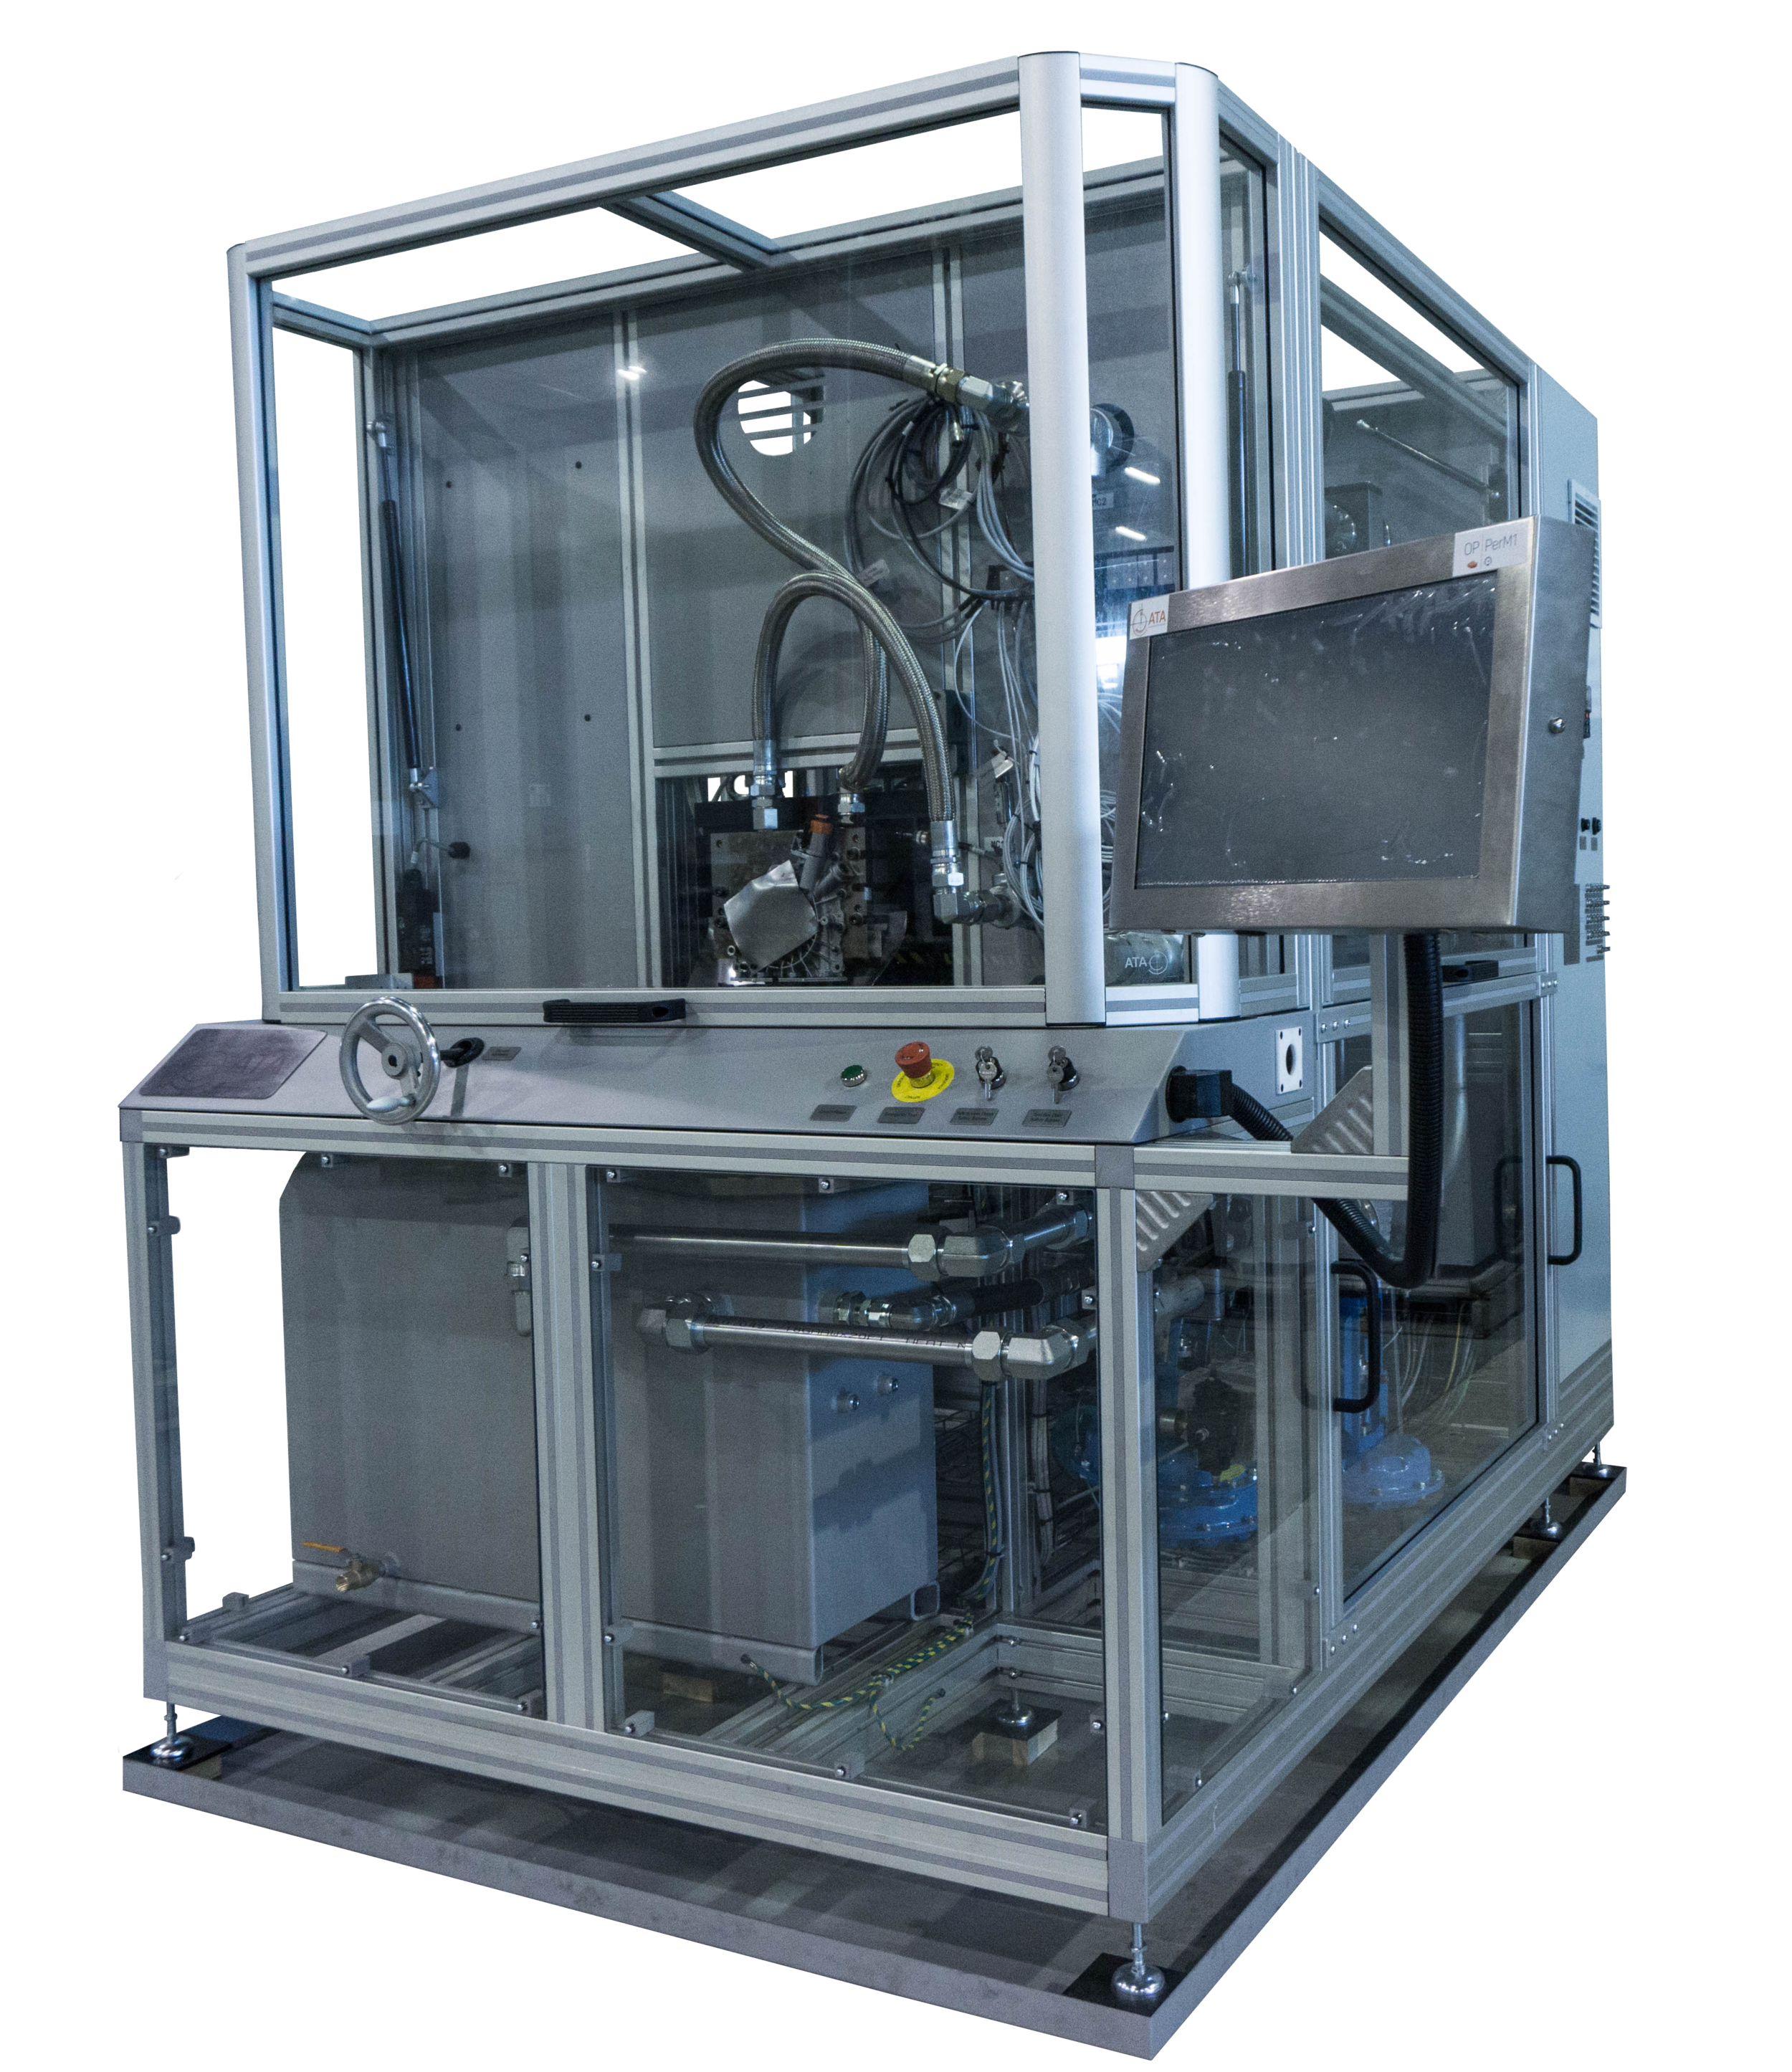 Mechanical Engine Oil Pump Testing   A test platform devoted to thoroughly capturing and understanding the failure modes of mechanical oil pumps ensures the dependability your customers value most.    Click here   to learn more.